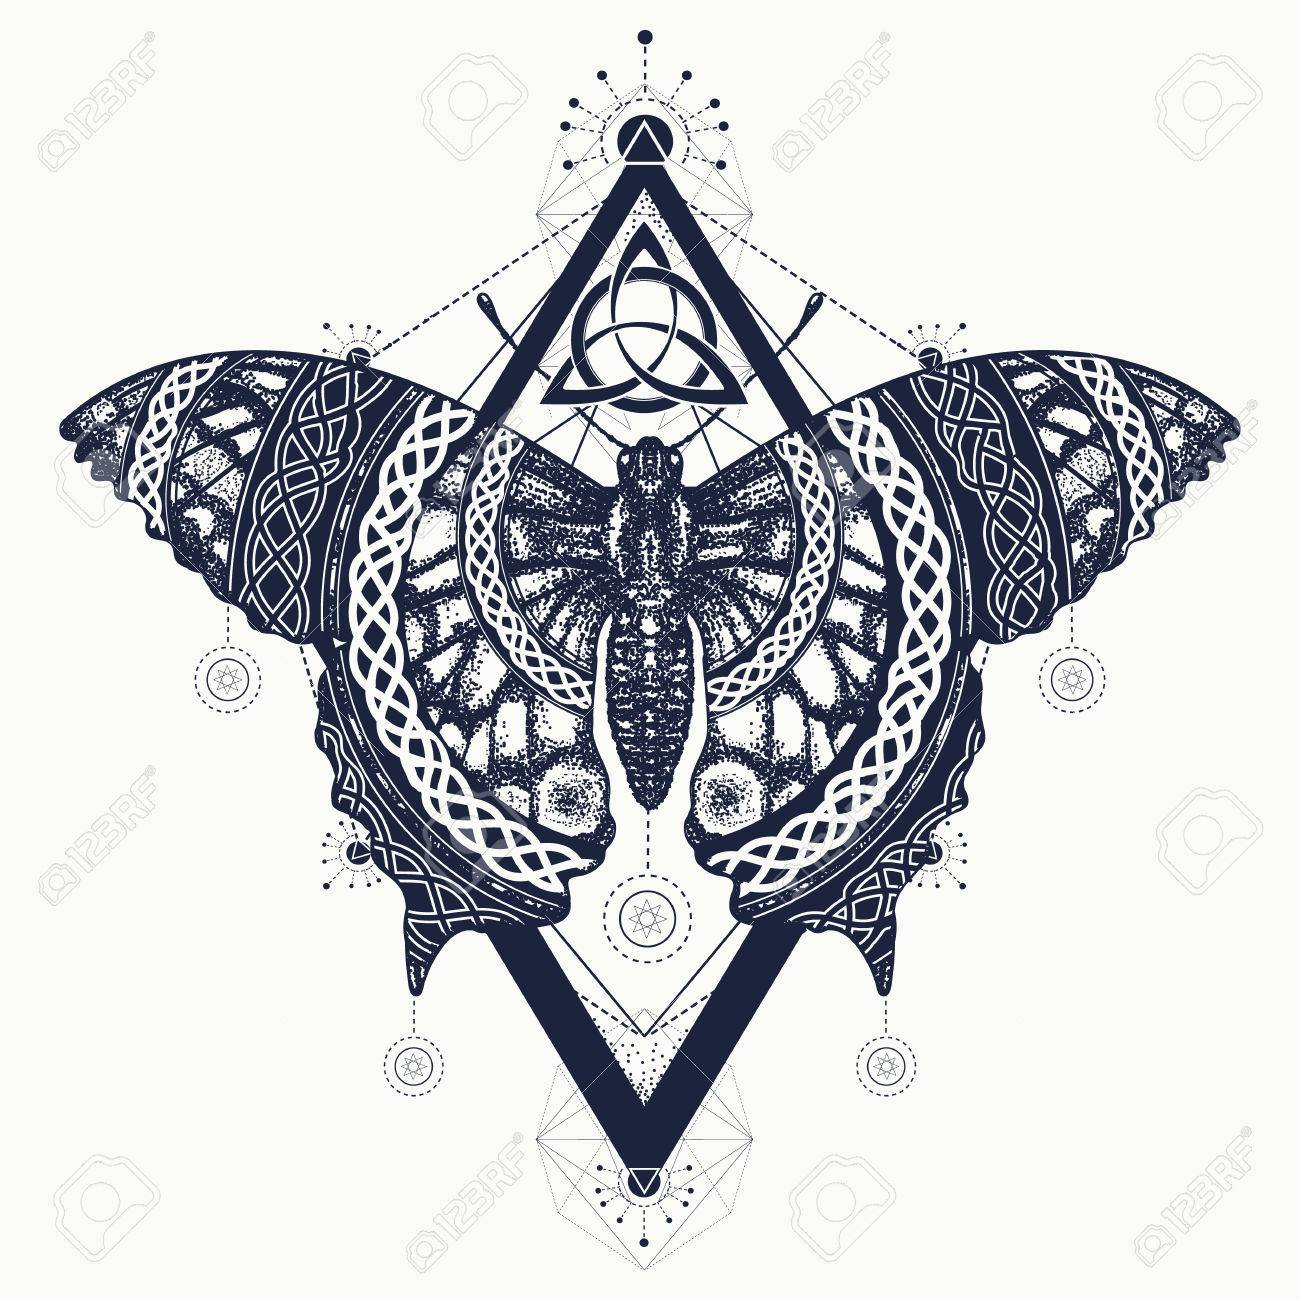 68759621-butterfly-tattoo-art-celtic-style-mystical-symbol-of-freedom-nature-tourism-beautiful-swallowtail-bo.jpg